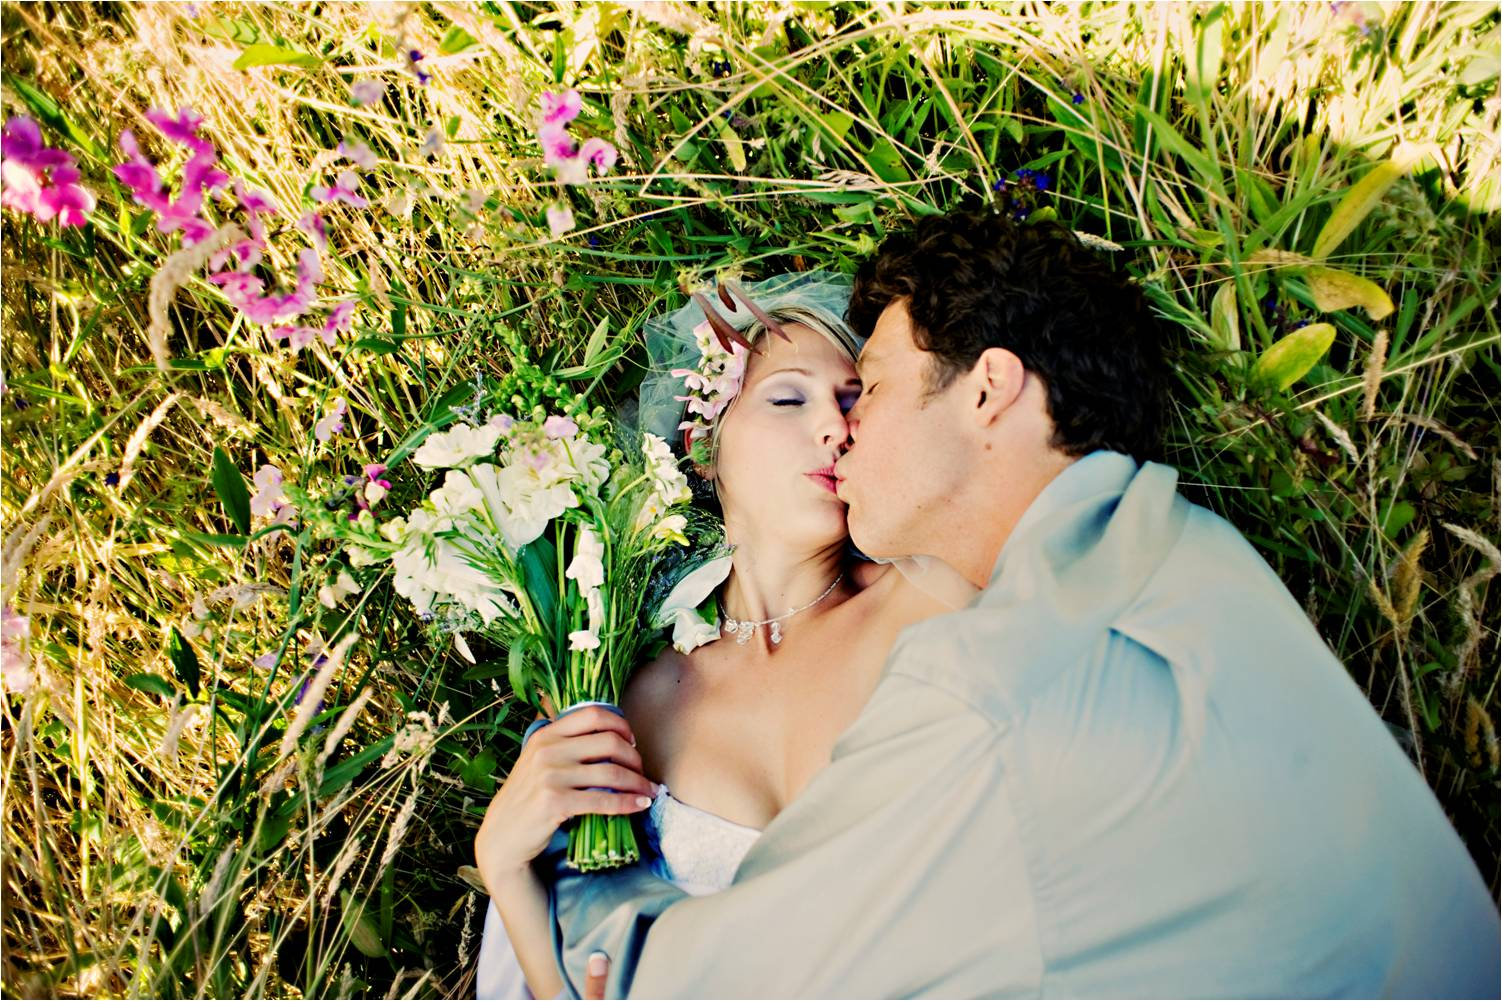 Bride and groom lay in grass in full wedding attire after for Dress for summer outdoor wedding